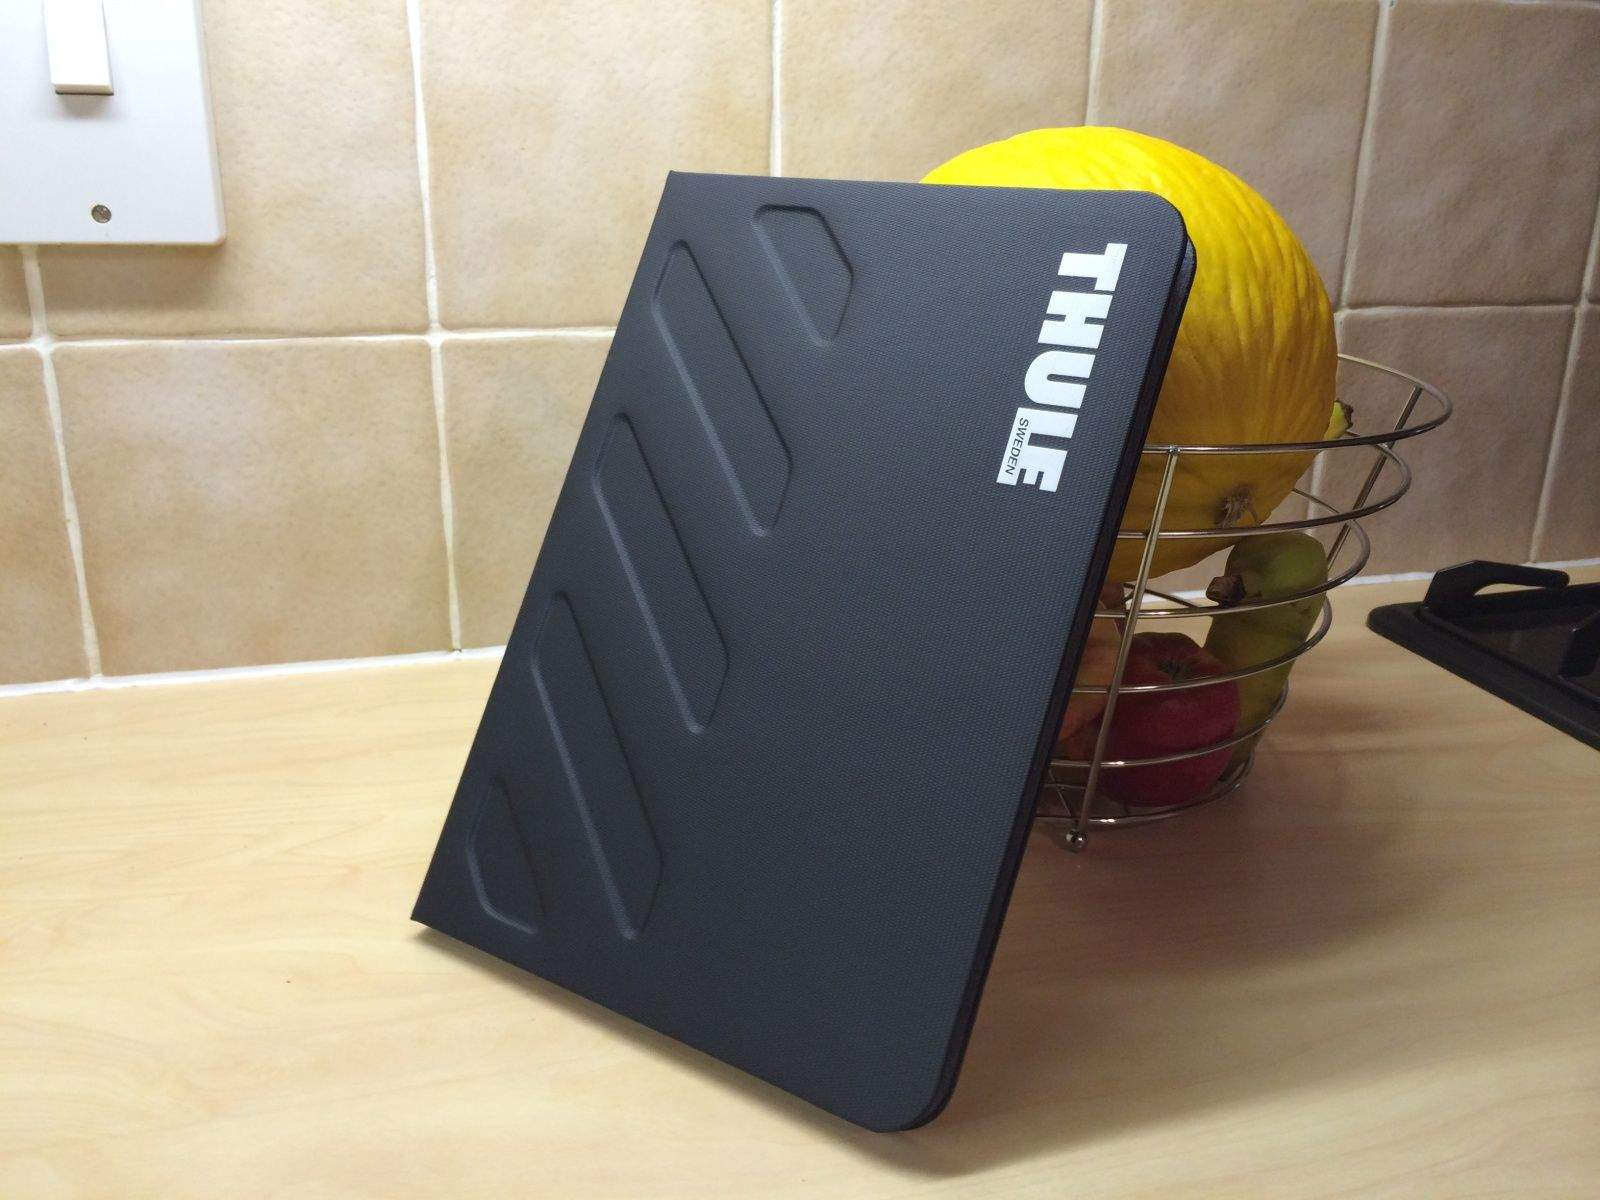 Thule's New iPad Air Case Is Tough & Protective But Still